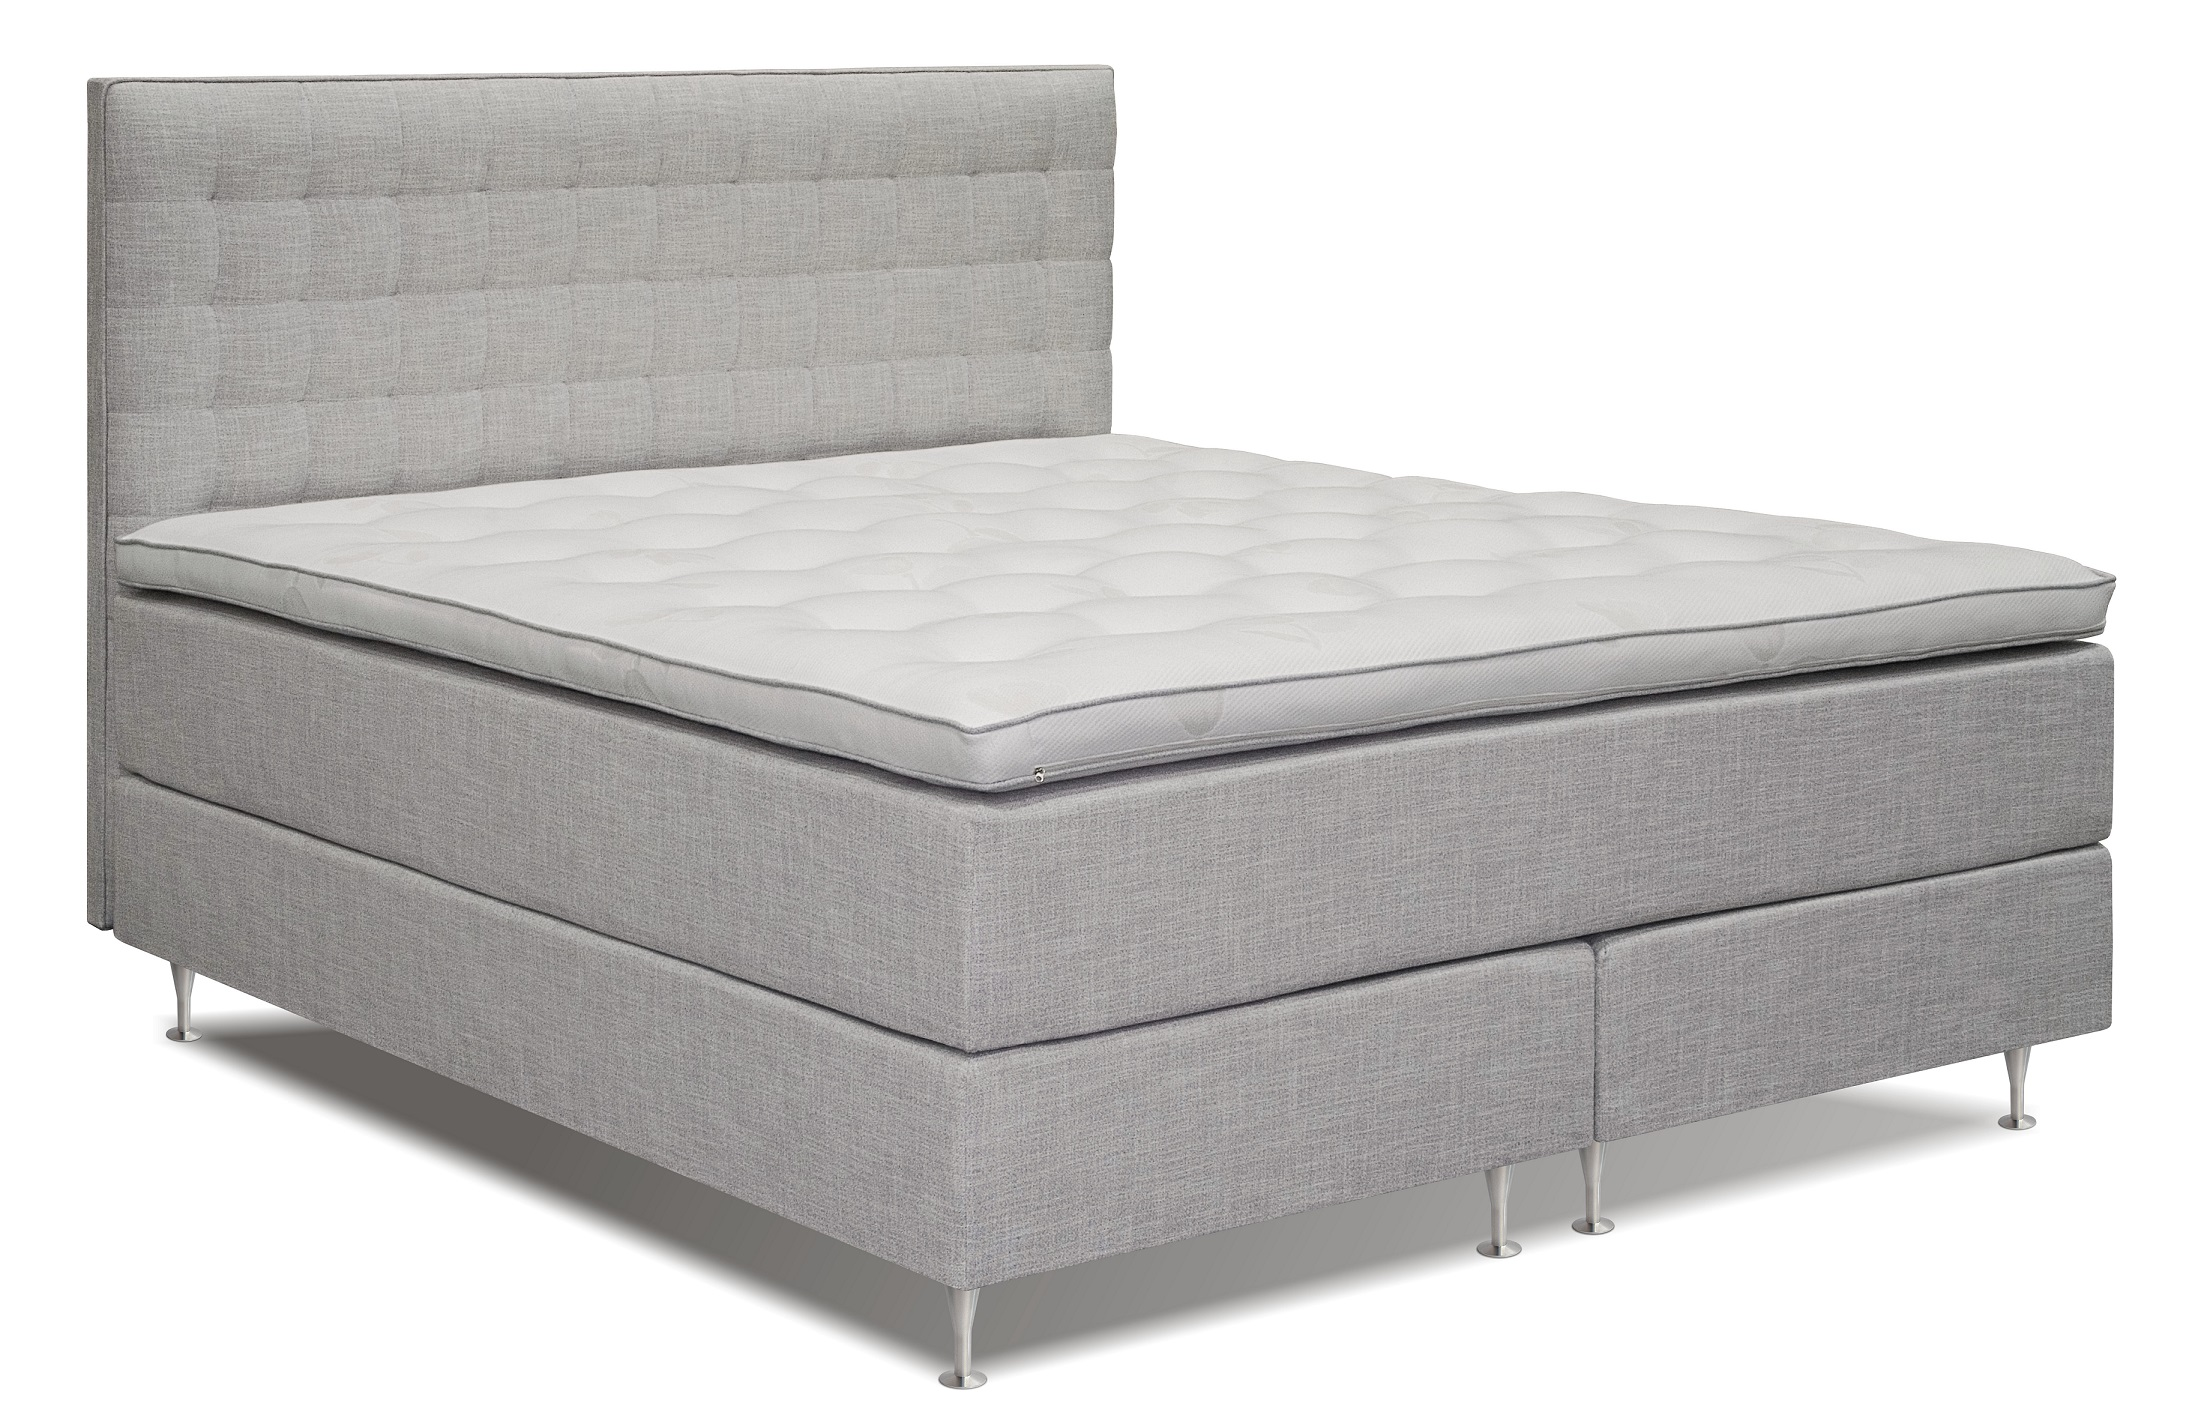 GALANT Continental Bed 180 1 21